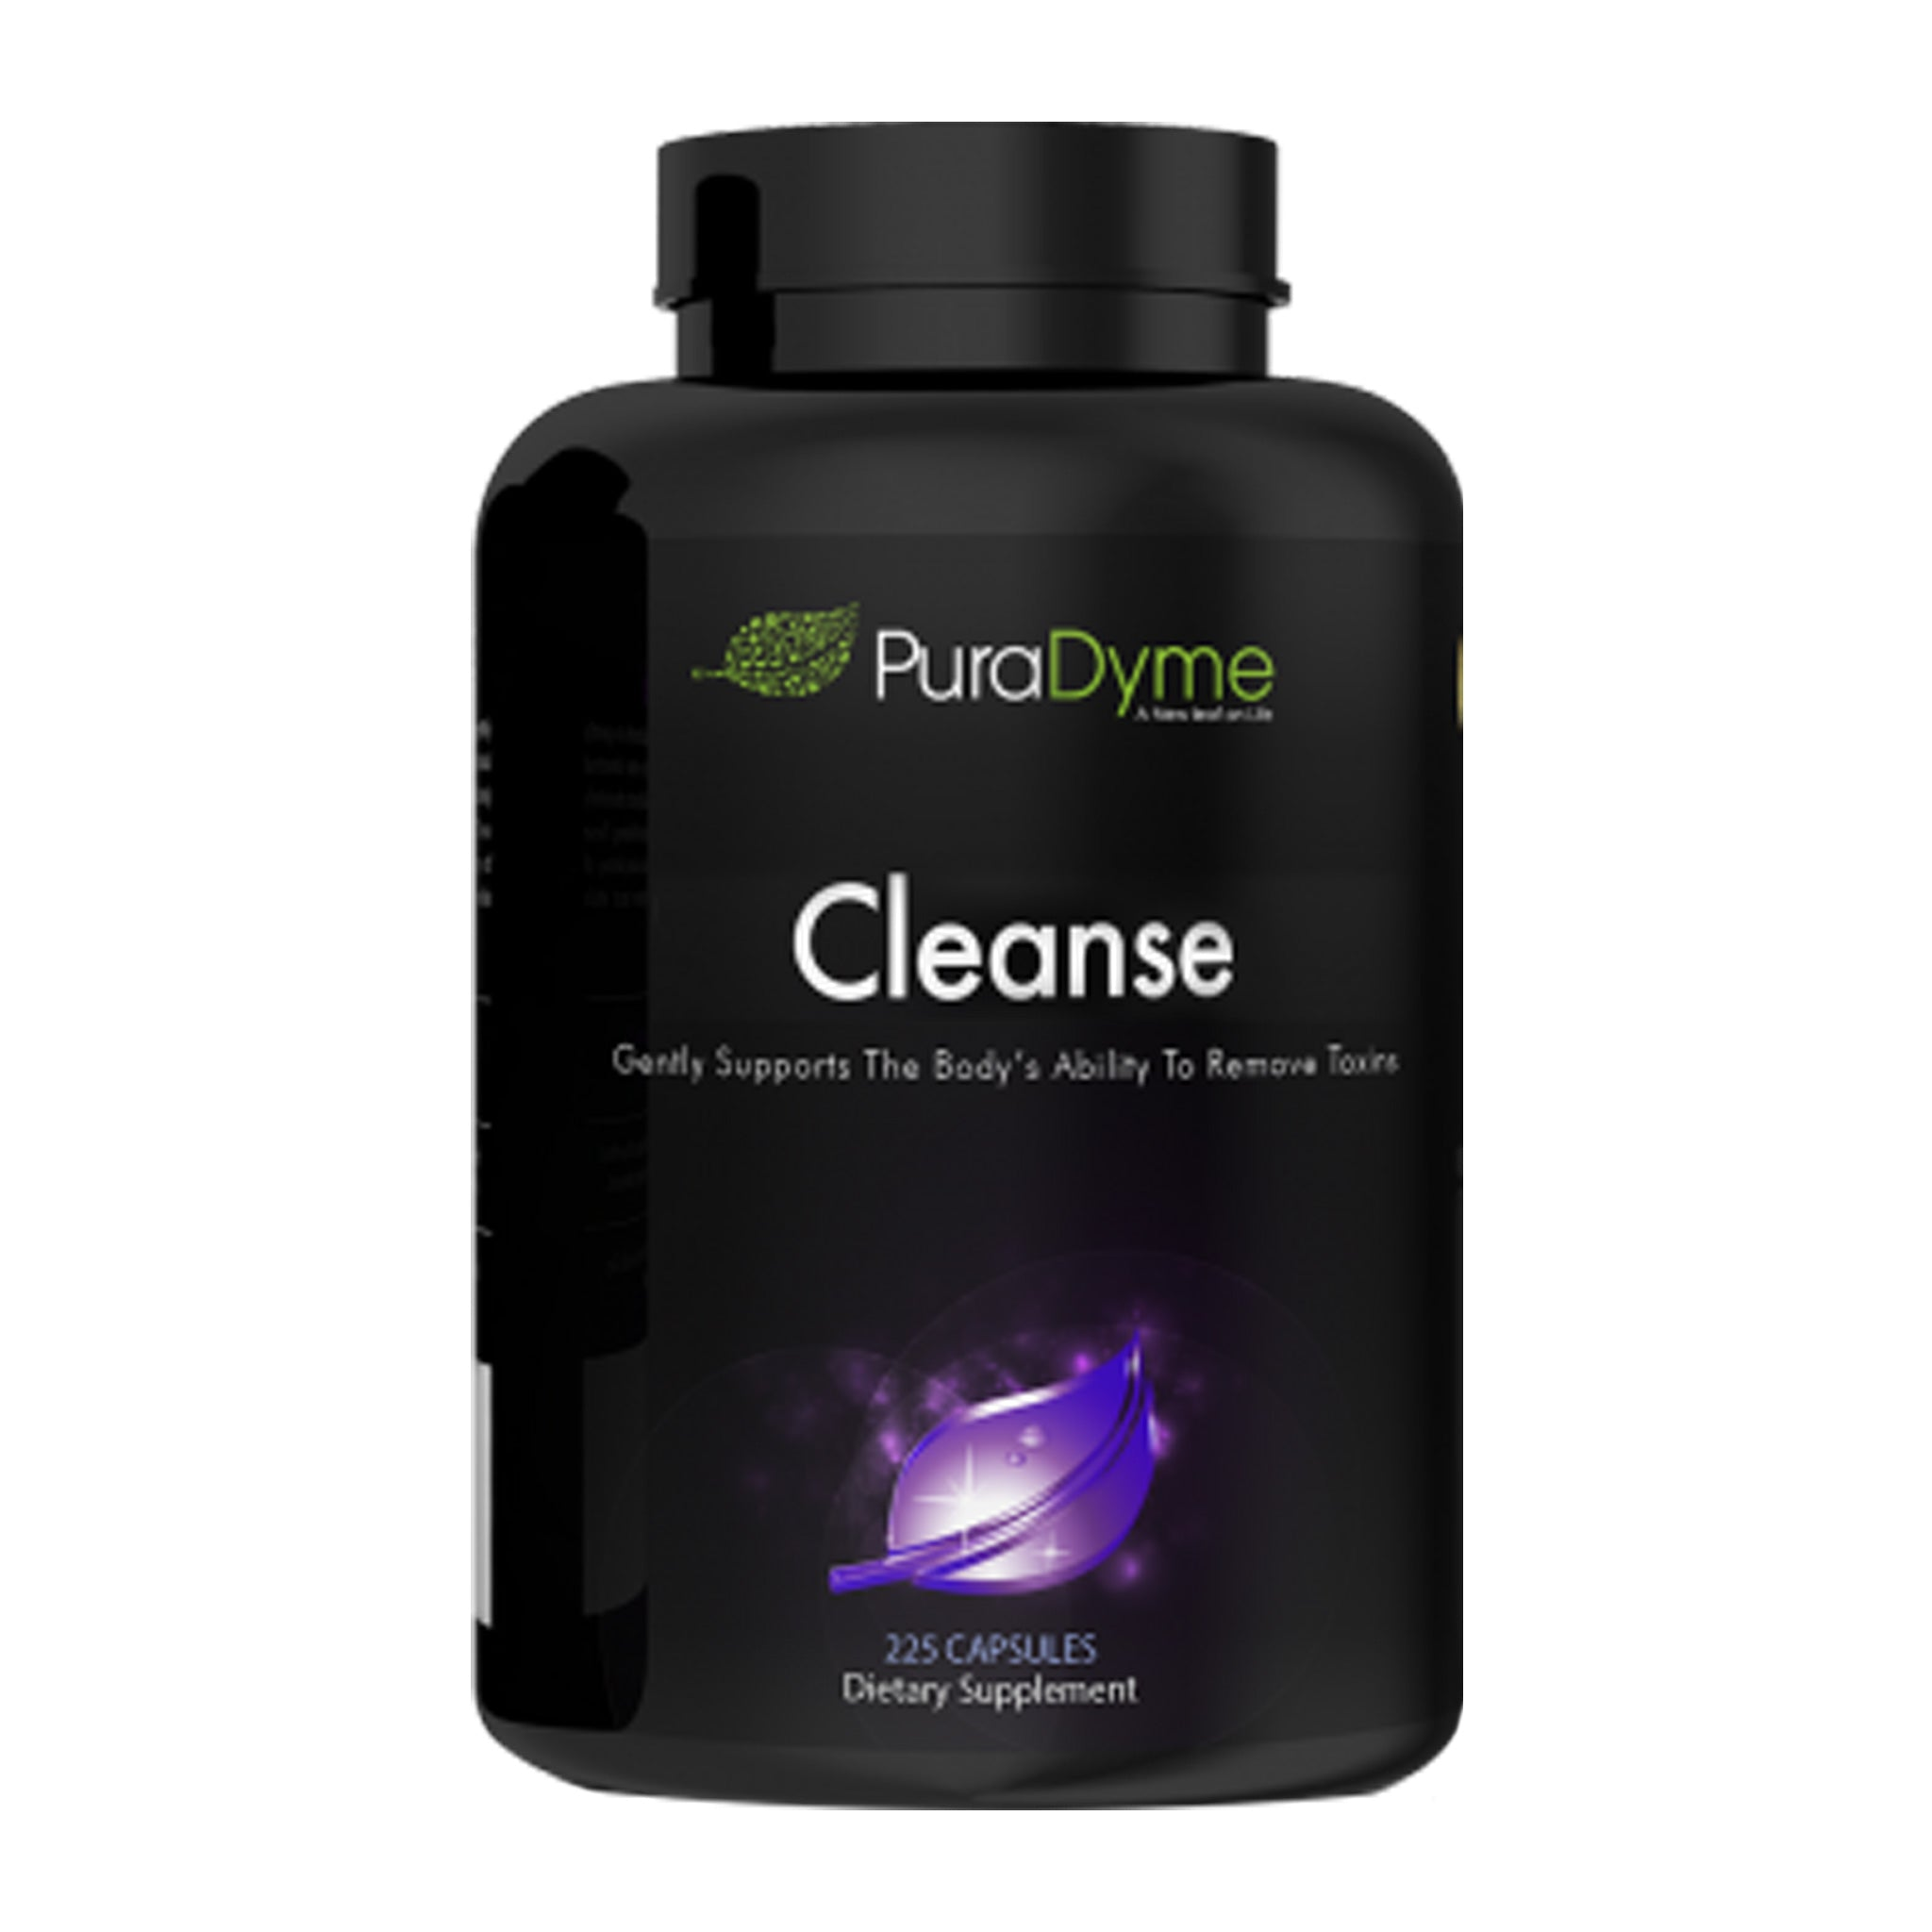 PuraDyme Herbal Colon Cleanse (225 caps)